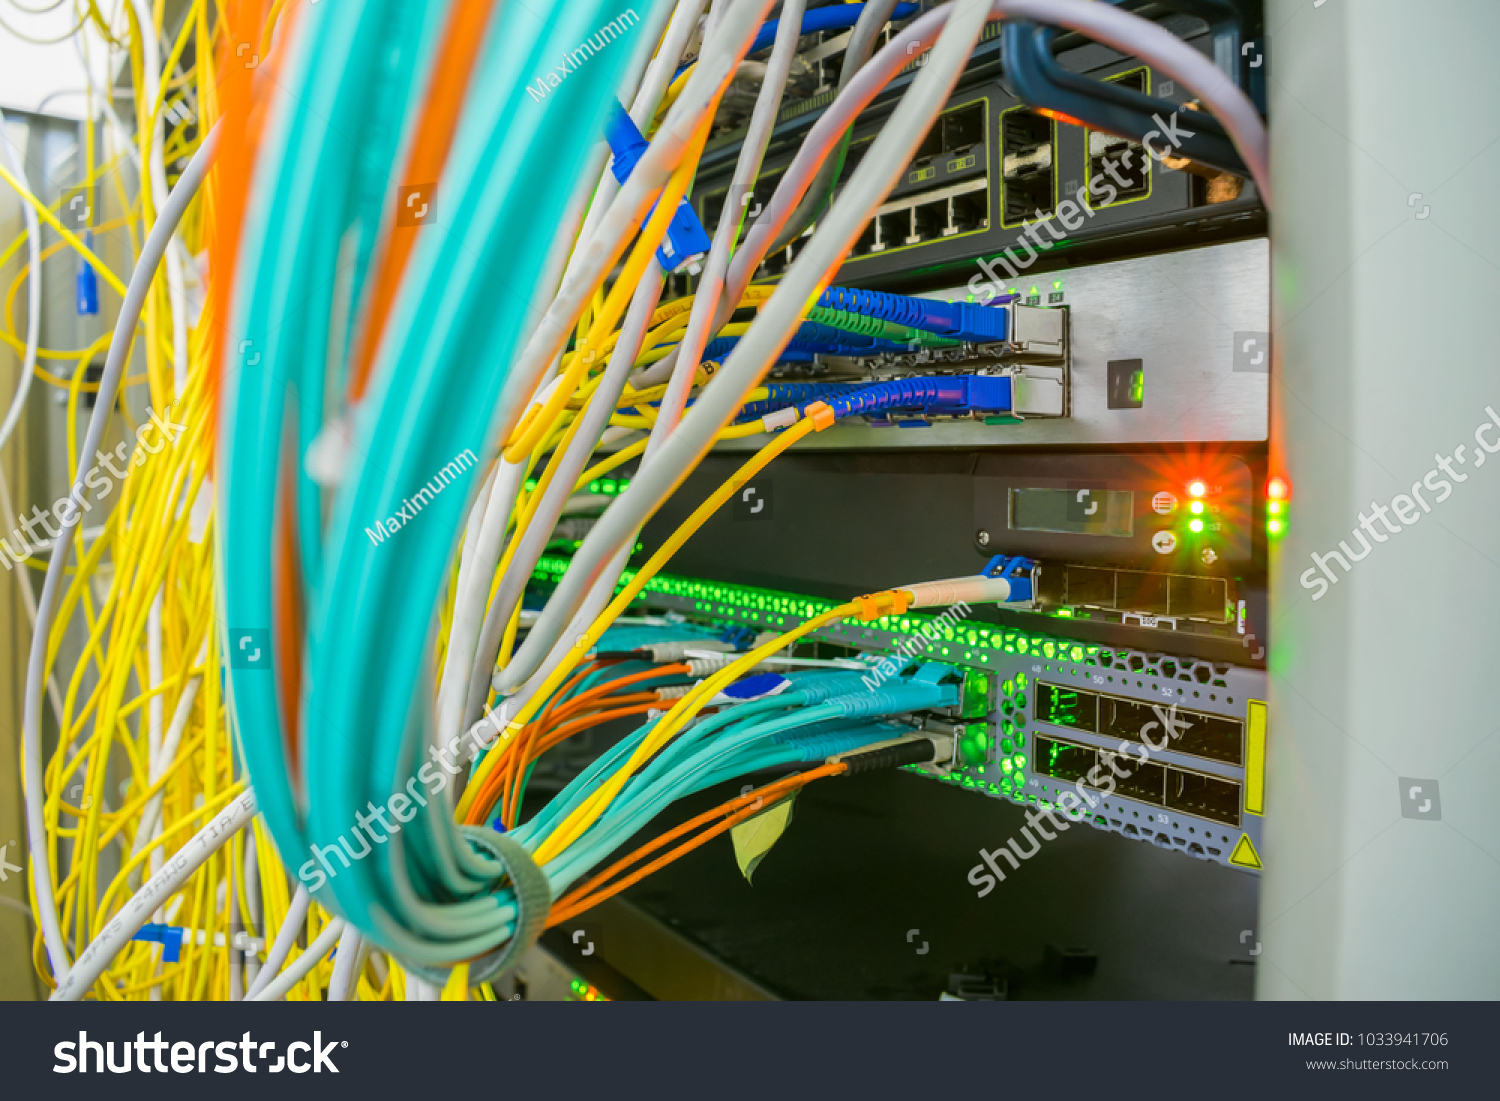 Messy Plex Wires Server Rack Data Stock Photo Edit Now 1033941706 Central Wiring Panel Of In The Center High Speed